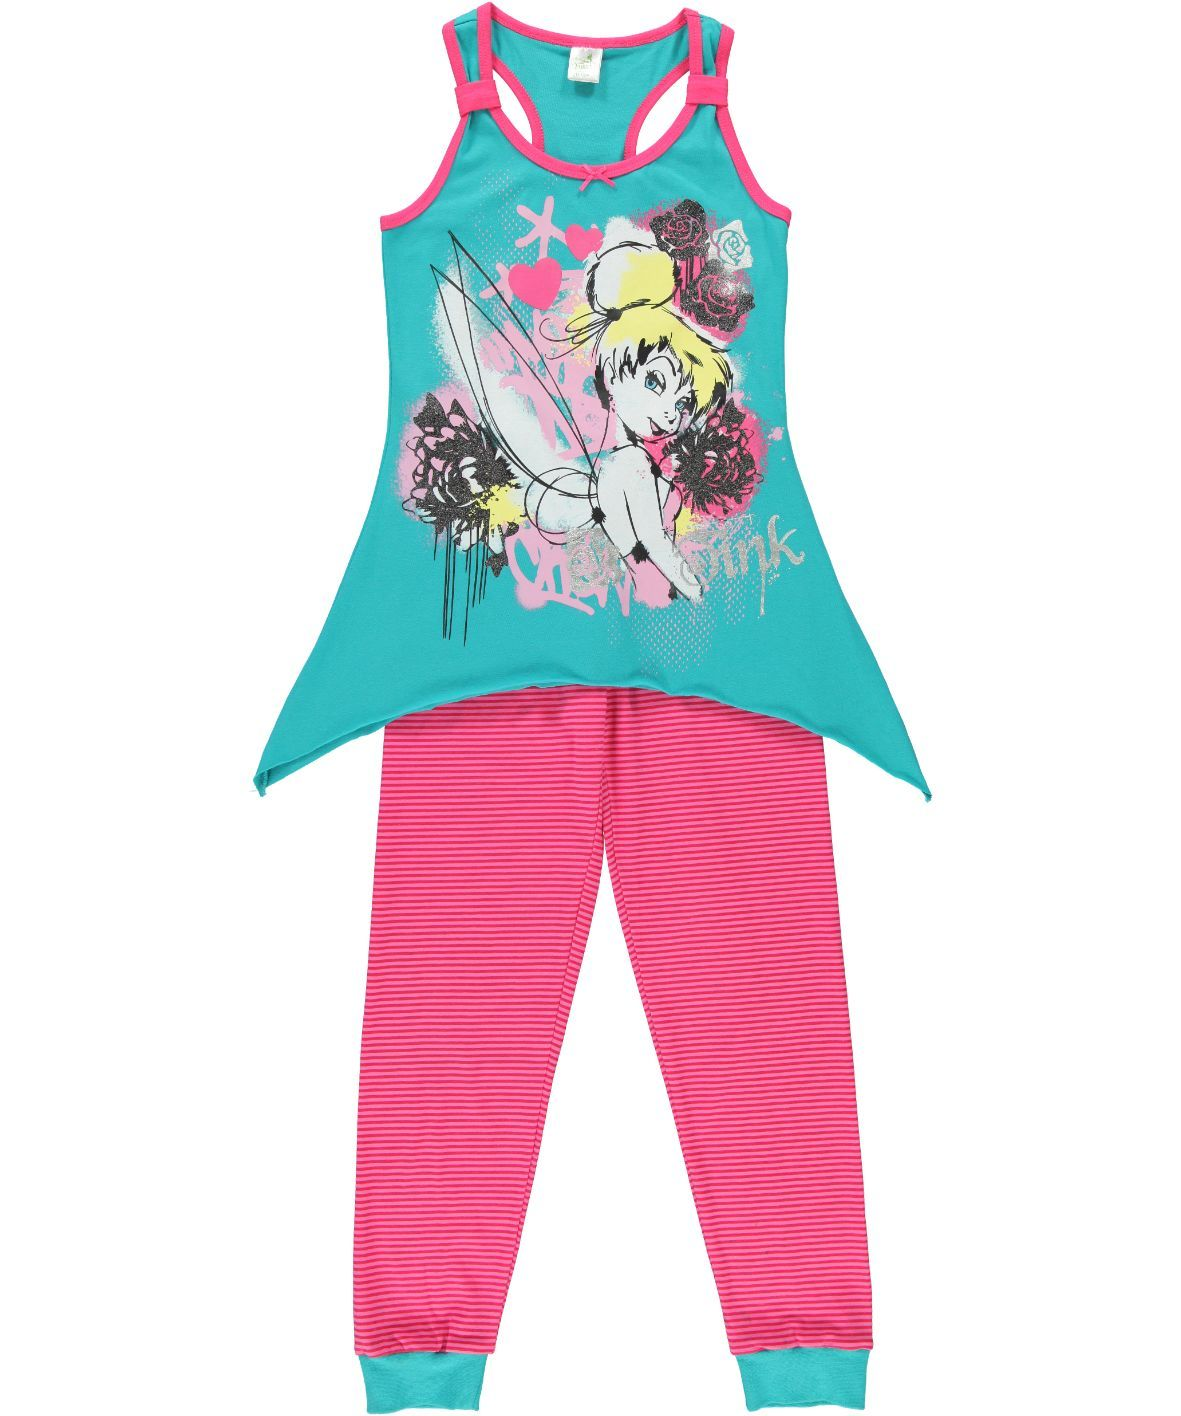 fe258fc81a0a2 Your daughter can get edgy with Tink in this sleeveless vest and leggings  set. Available at selected Ackermans stores.